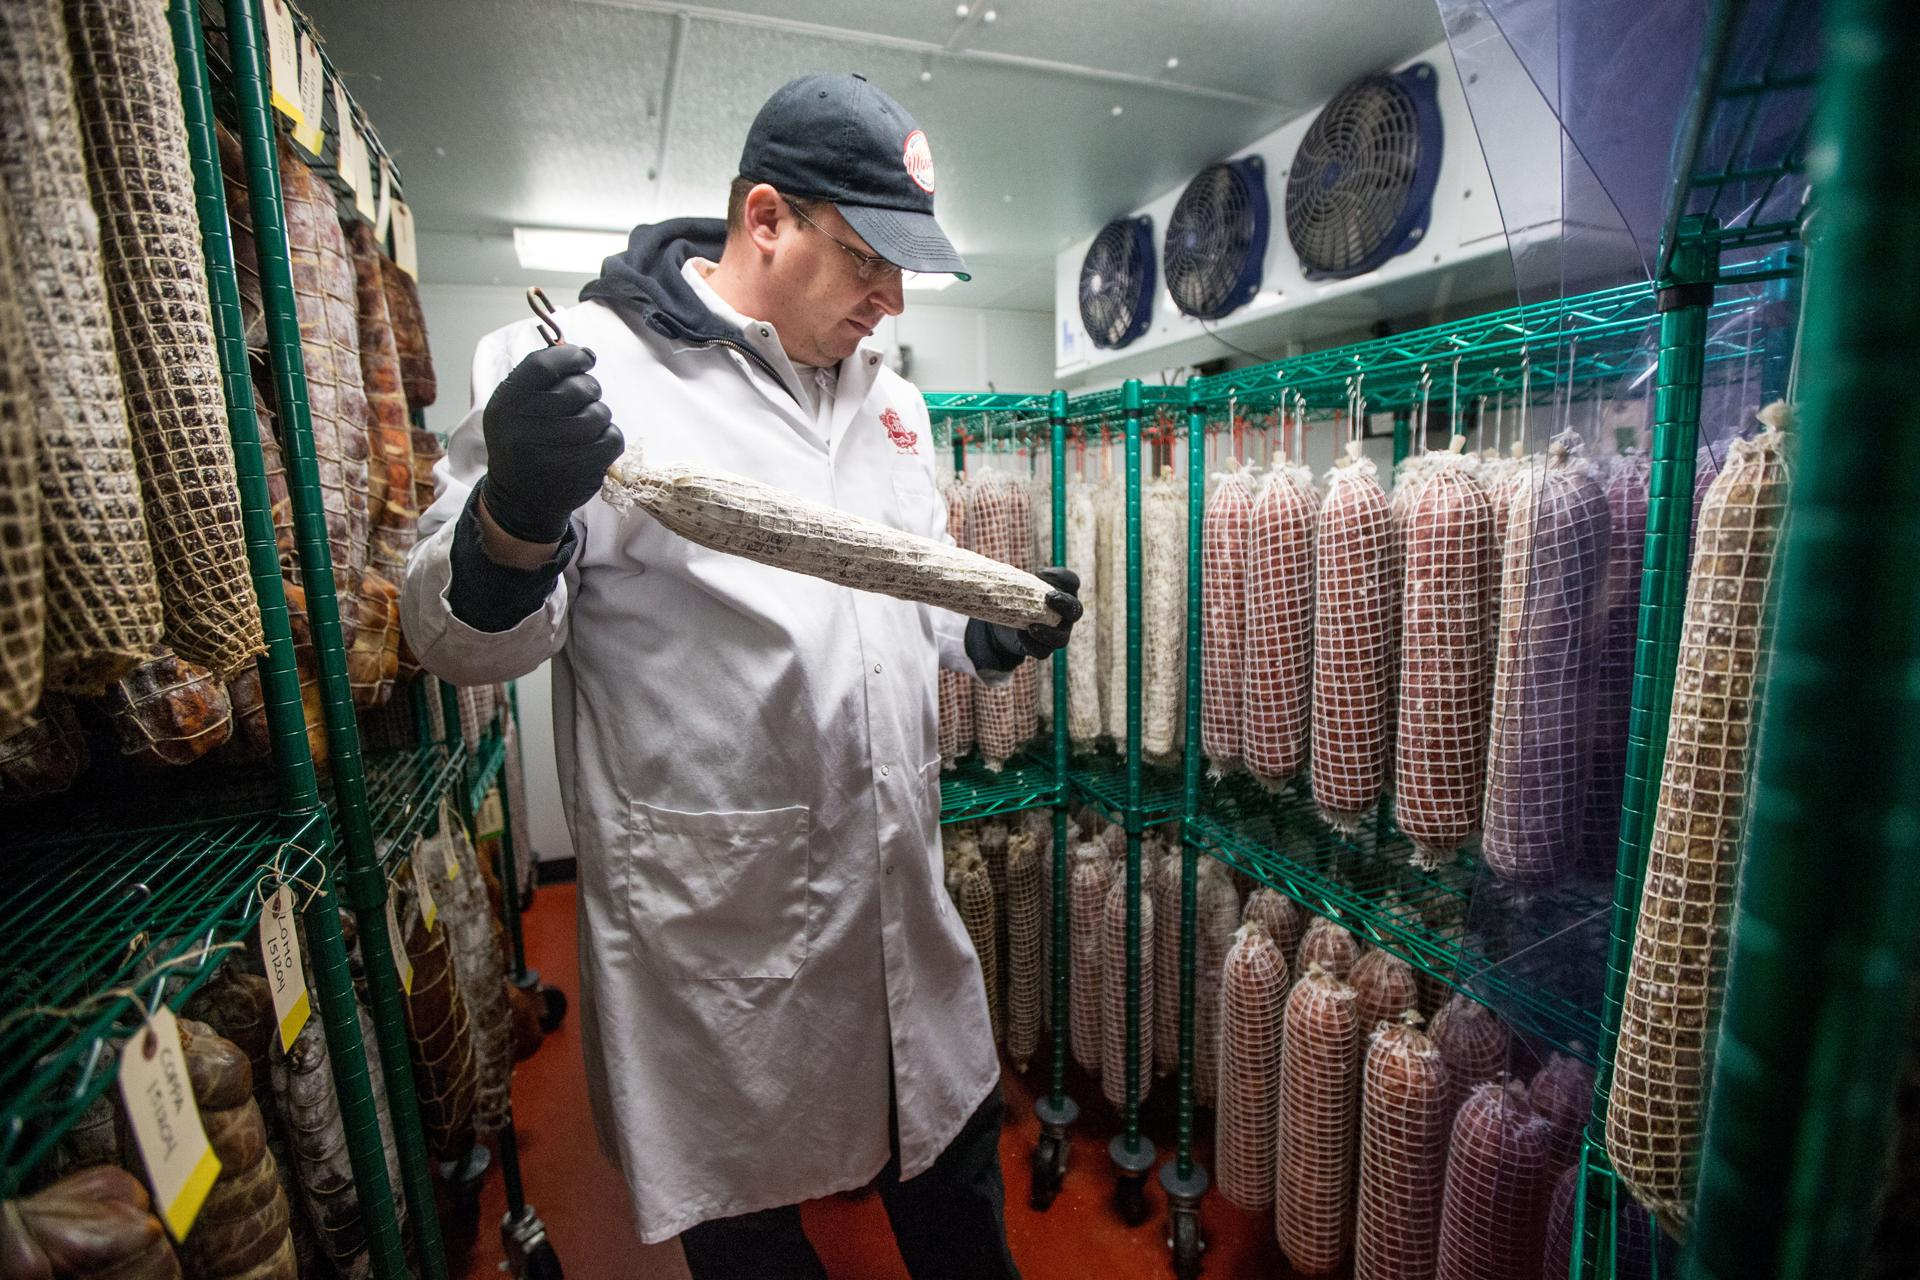 joshua smith is building charcuterie empire one link at a time joshua smith hanging cured meats at his waltham shop